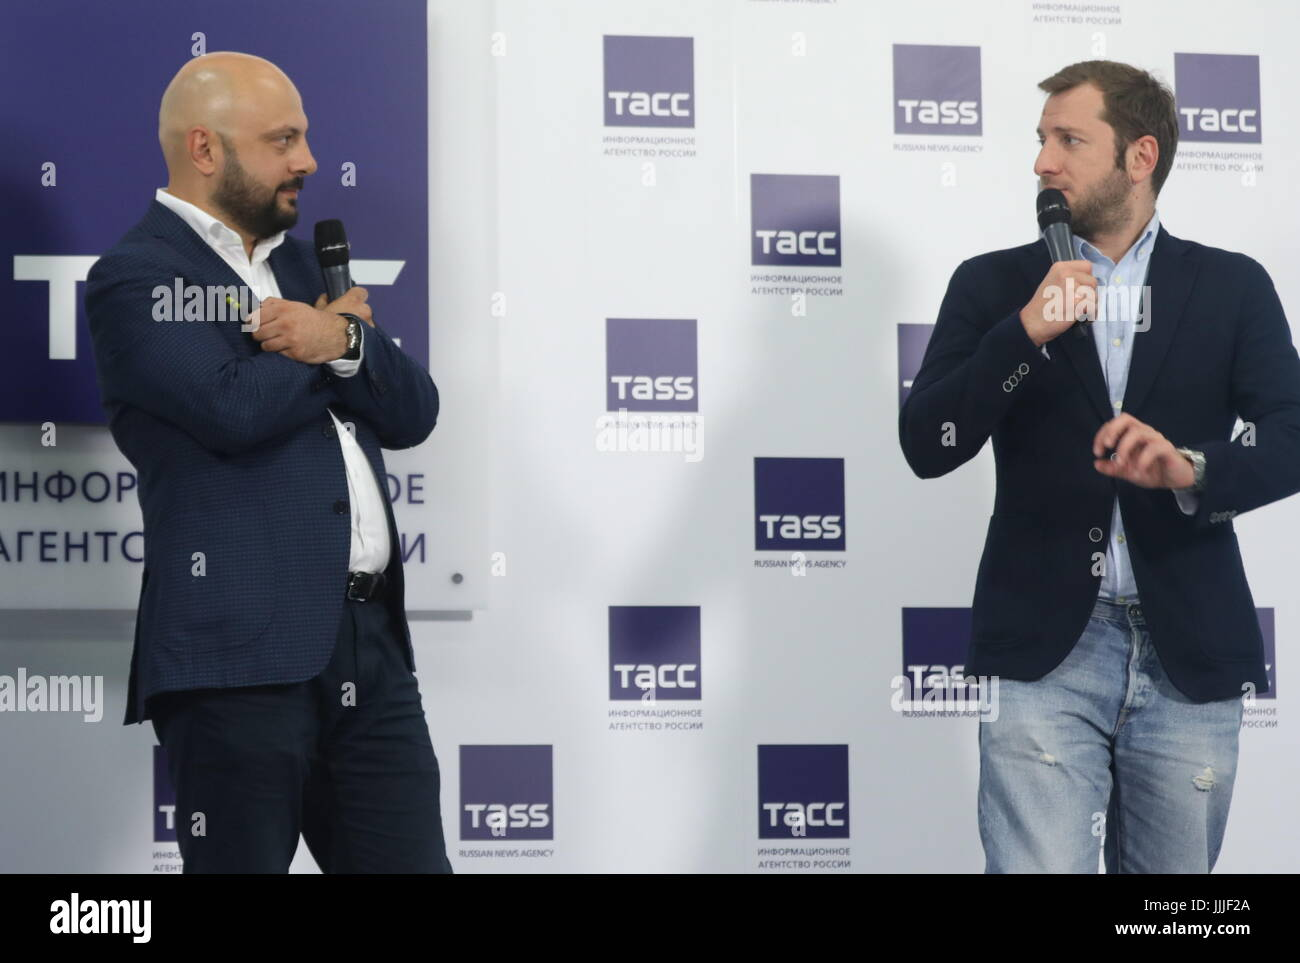 Moscow, Russia. 20th July, 2017. Film producer Georgy Shabanov (L) and film director Rezo Gigineishvili during a - Stock Image